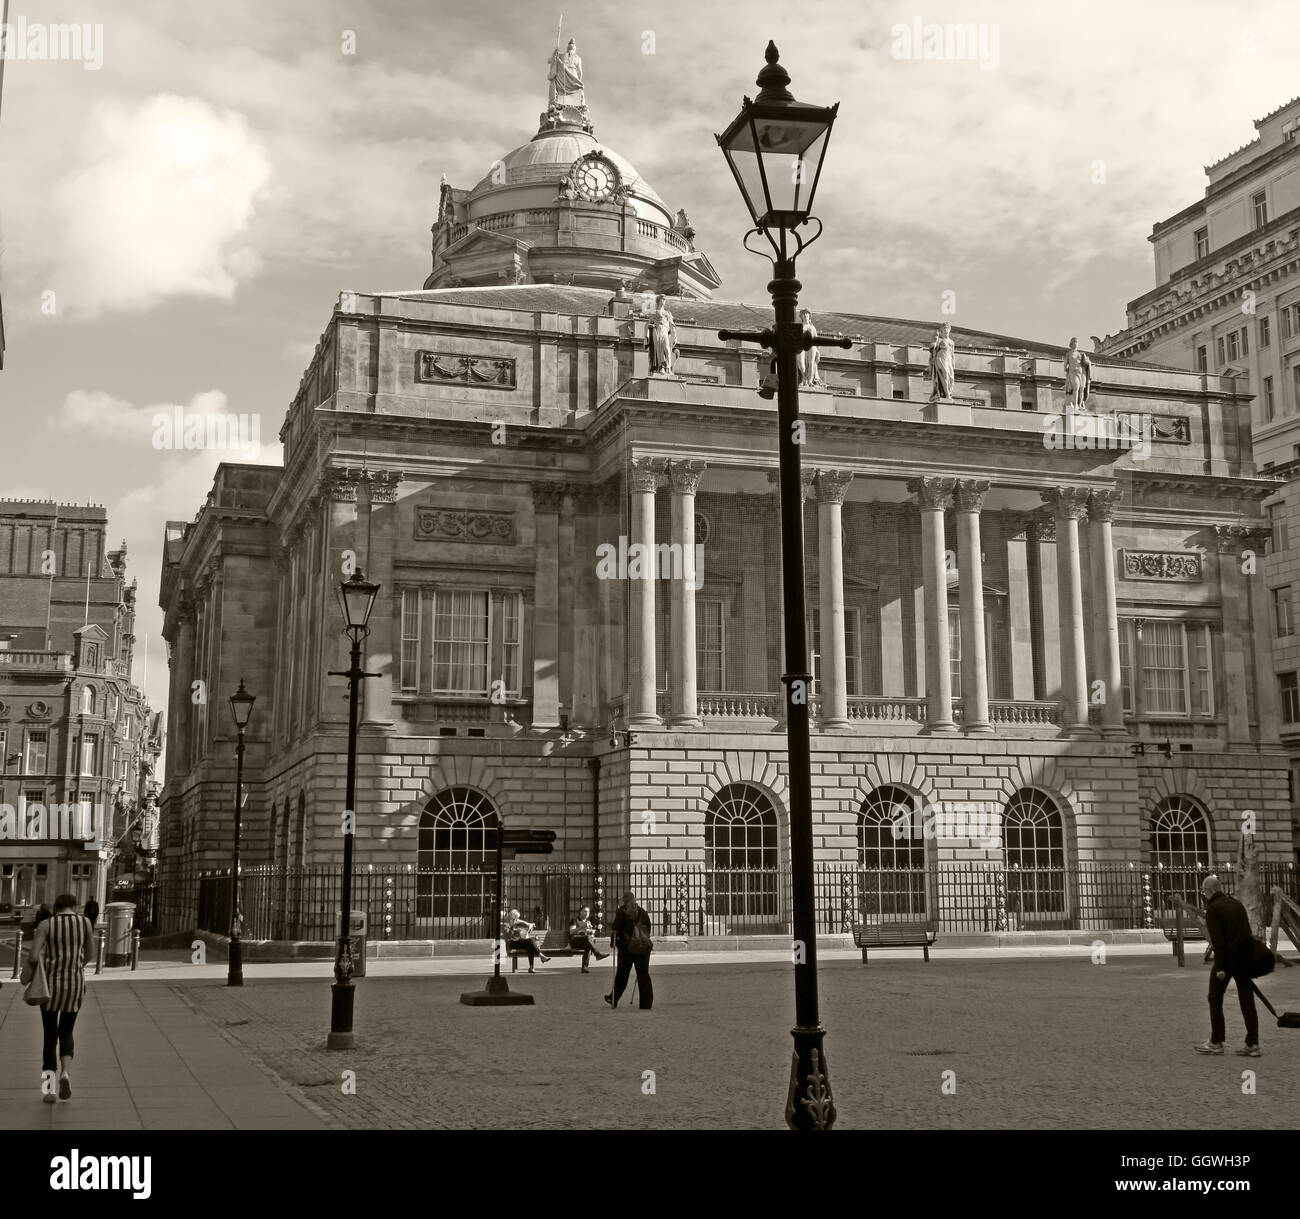 Liverpool Town Hall, Dale St,Merseyside,England,UK - sepia - Stock Image